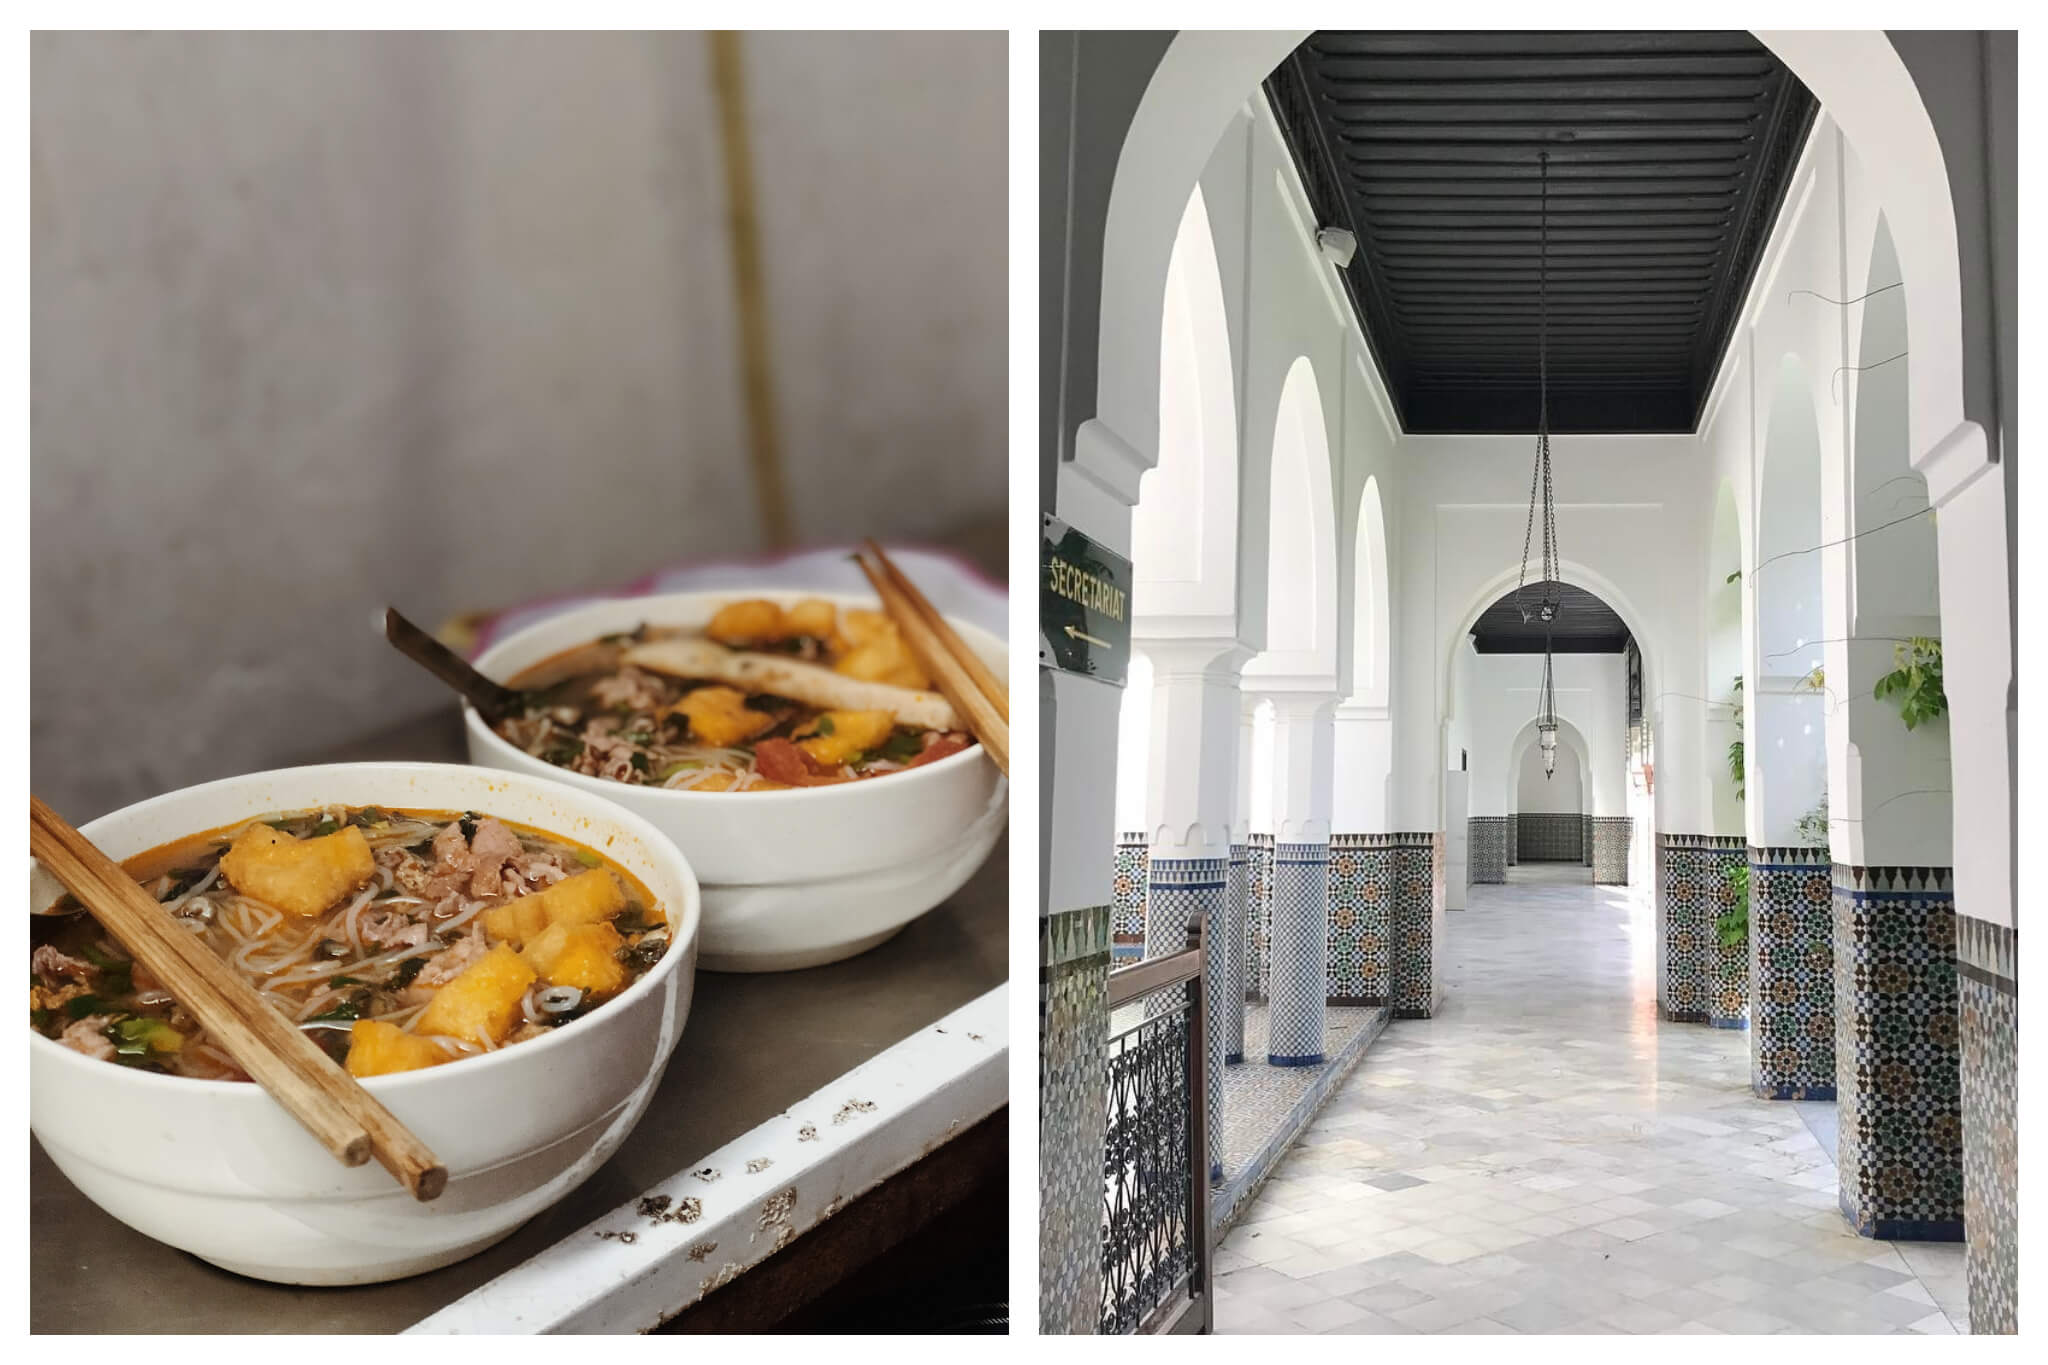 Left: Twopairs of chopsticks and two bowls of pho sit on a countertop in Paris 13th arrondissement, Right: The beautiful hallway, bright, white, and tiled, of the Grande Mosquée in Paris